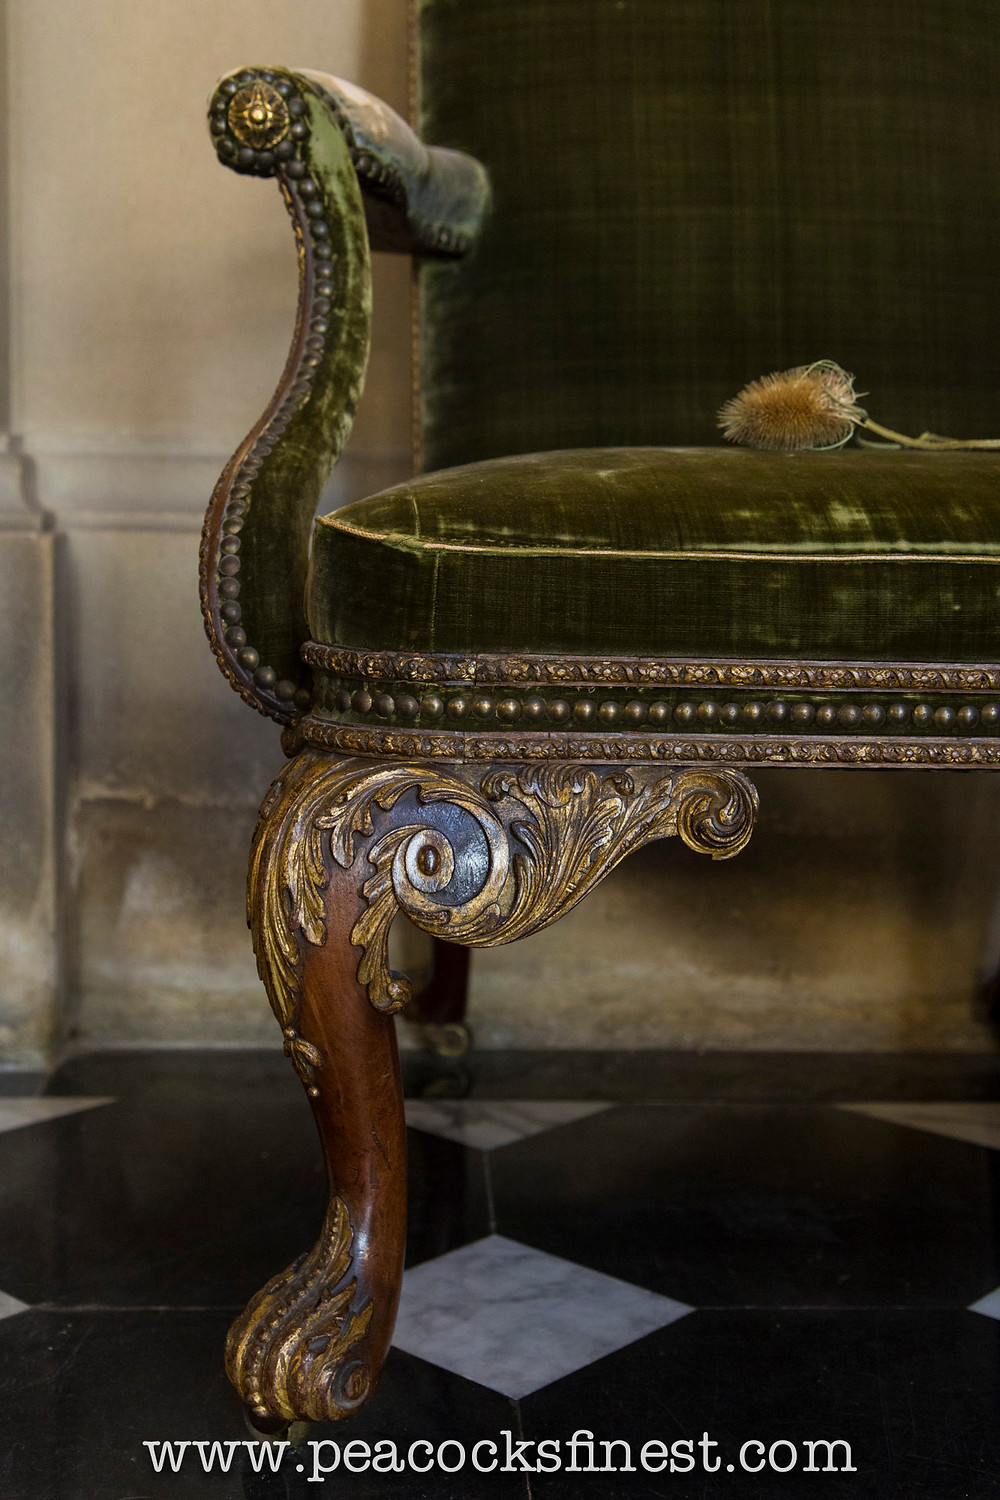 Chatsworth House, The Painted Hall. Detail of a superb George II period walnut and gilt armchair